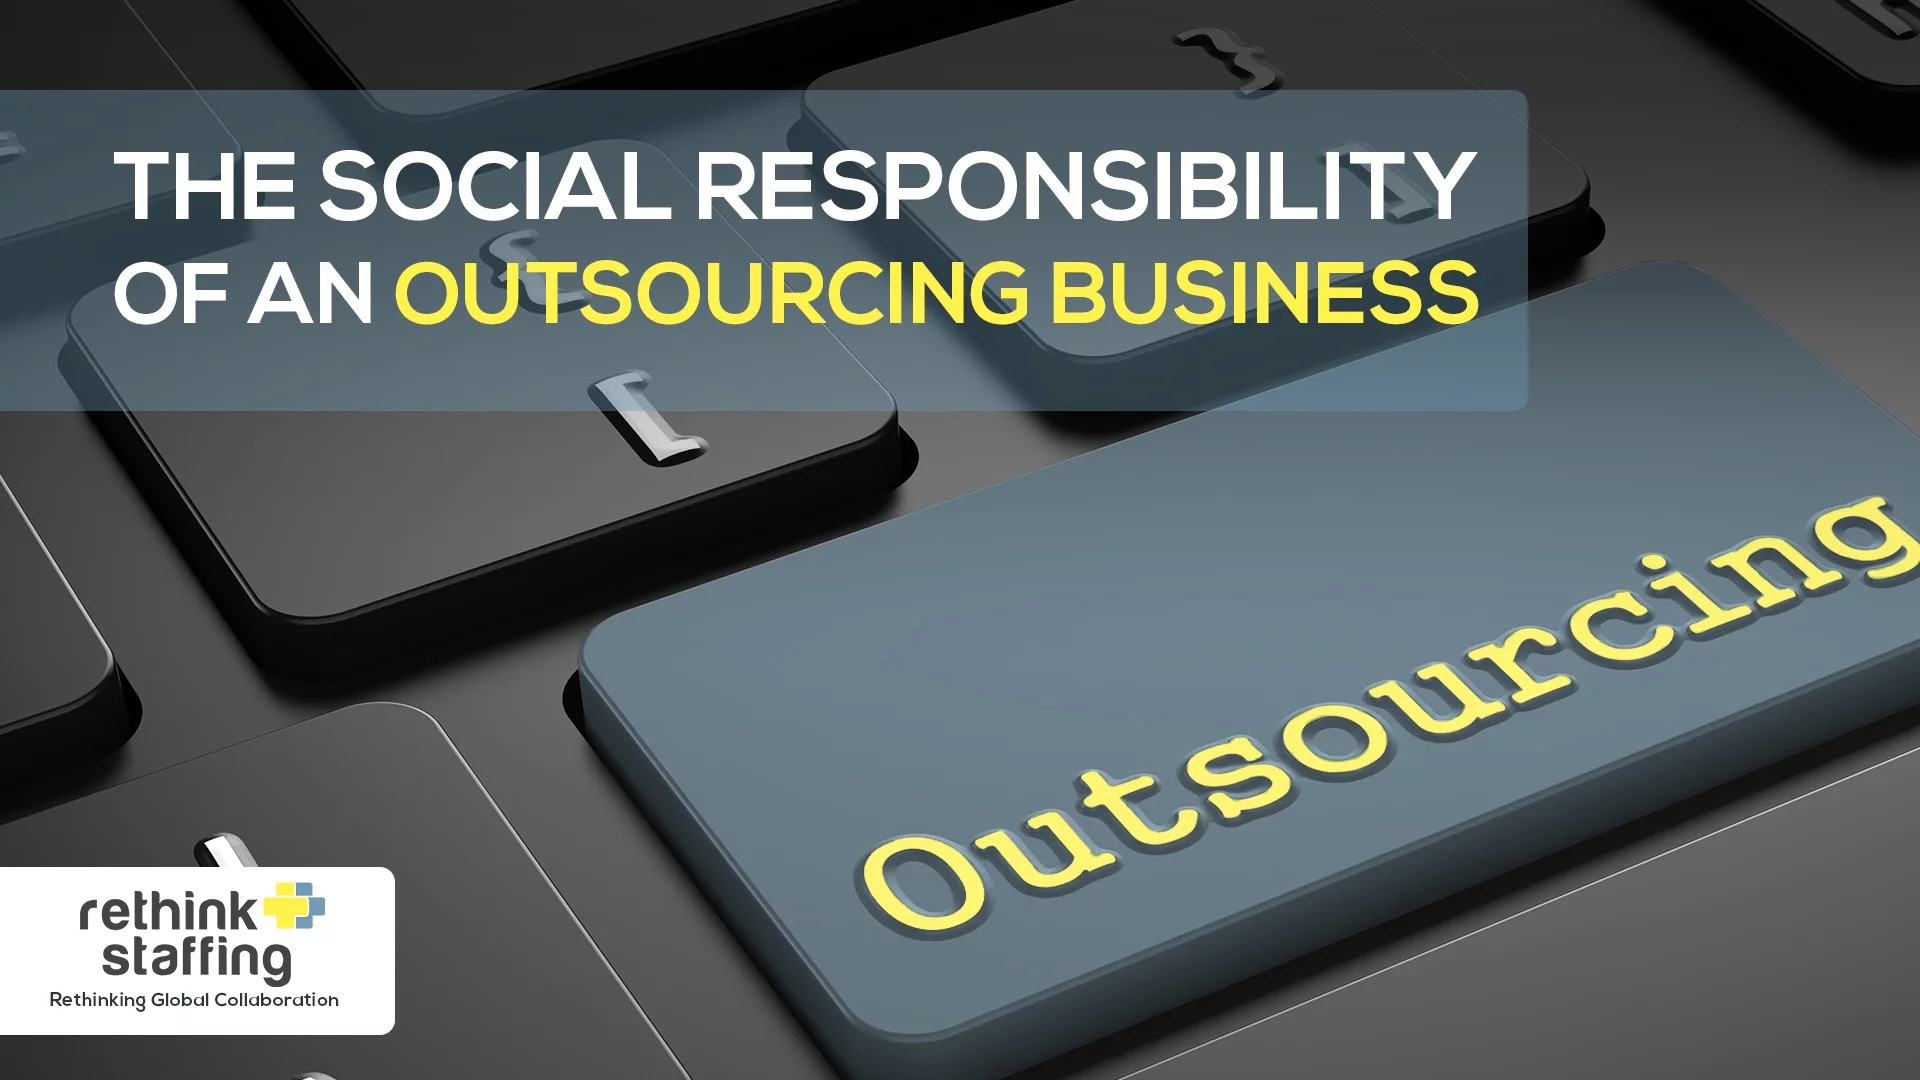 The Social Responsibility of an Outsourcing Business